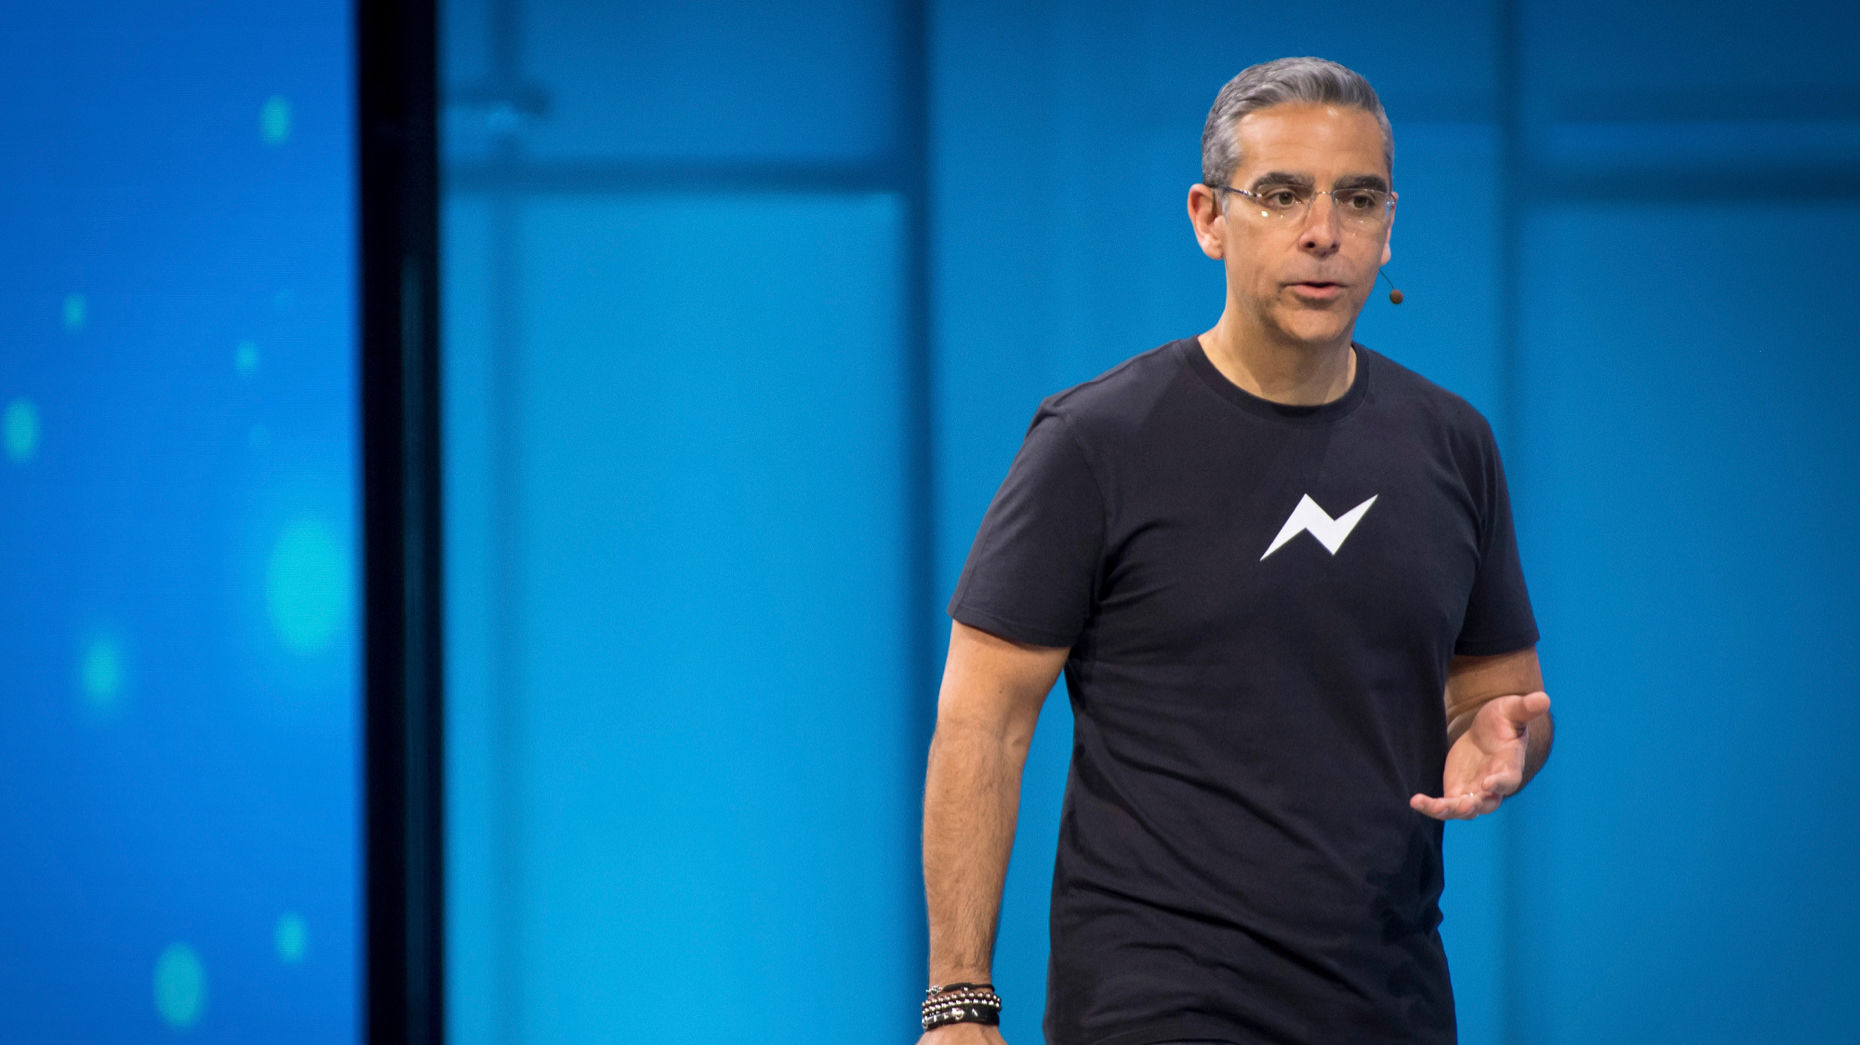 David Marcus, the head of Facebook's cryptocurrency project. Photo by Bloomberg